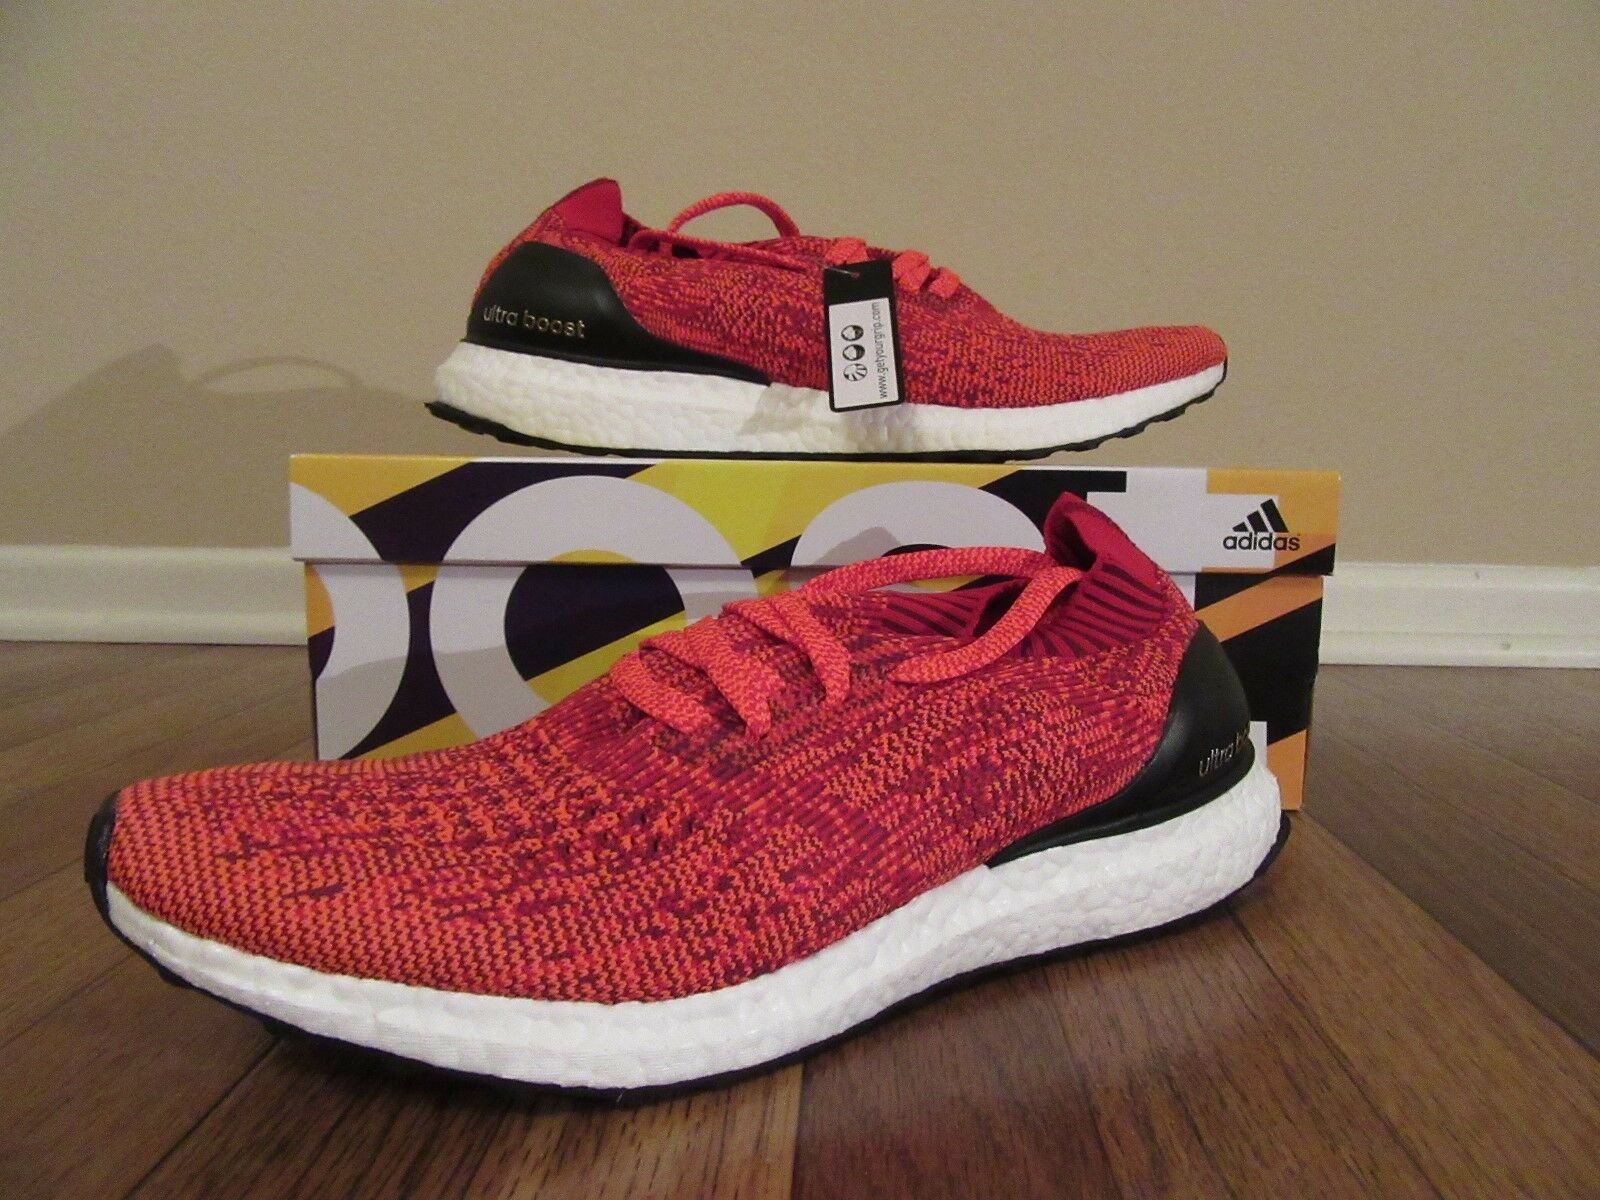 ebay adidas tennis shoes adidas ultra boost uncaged release dates